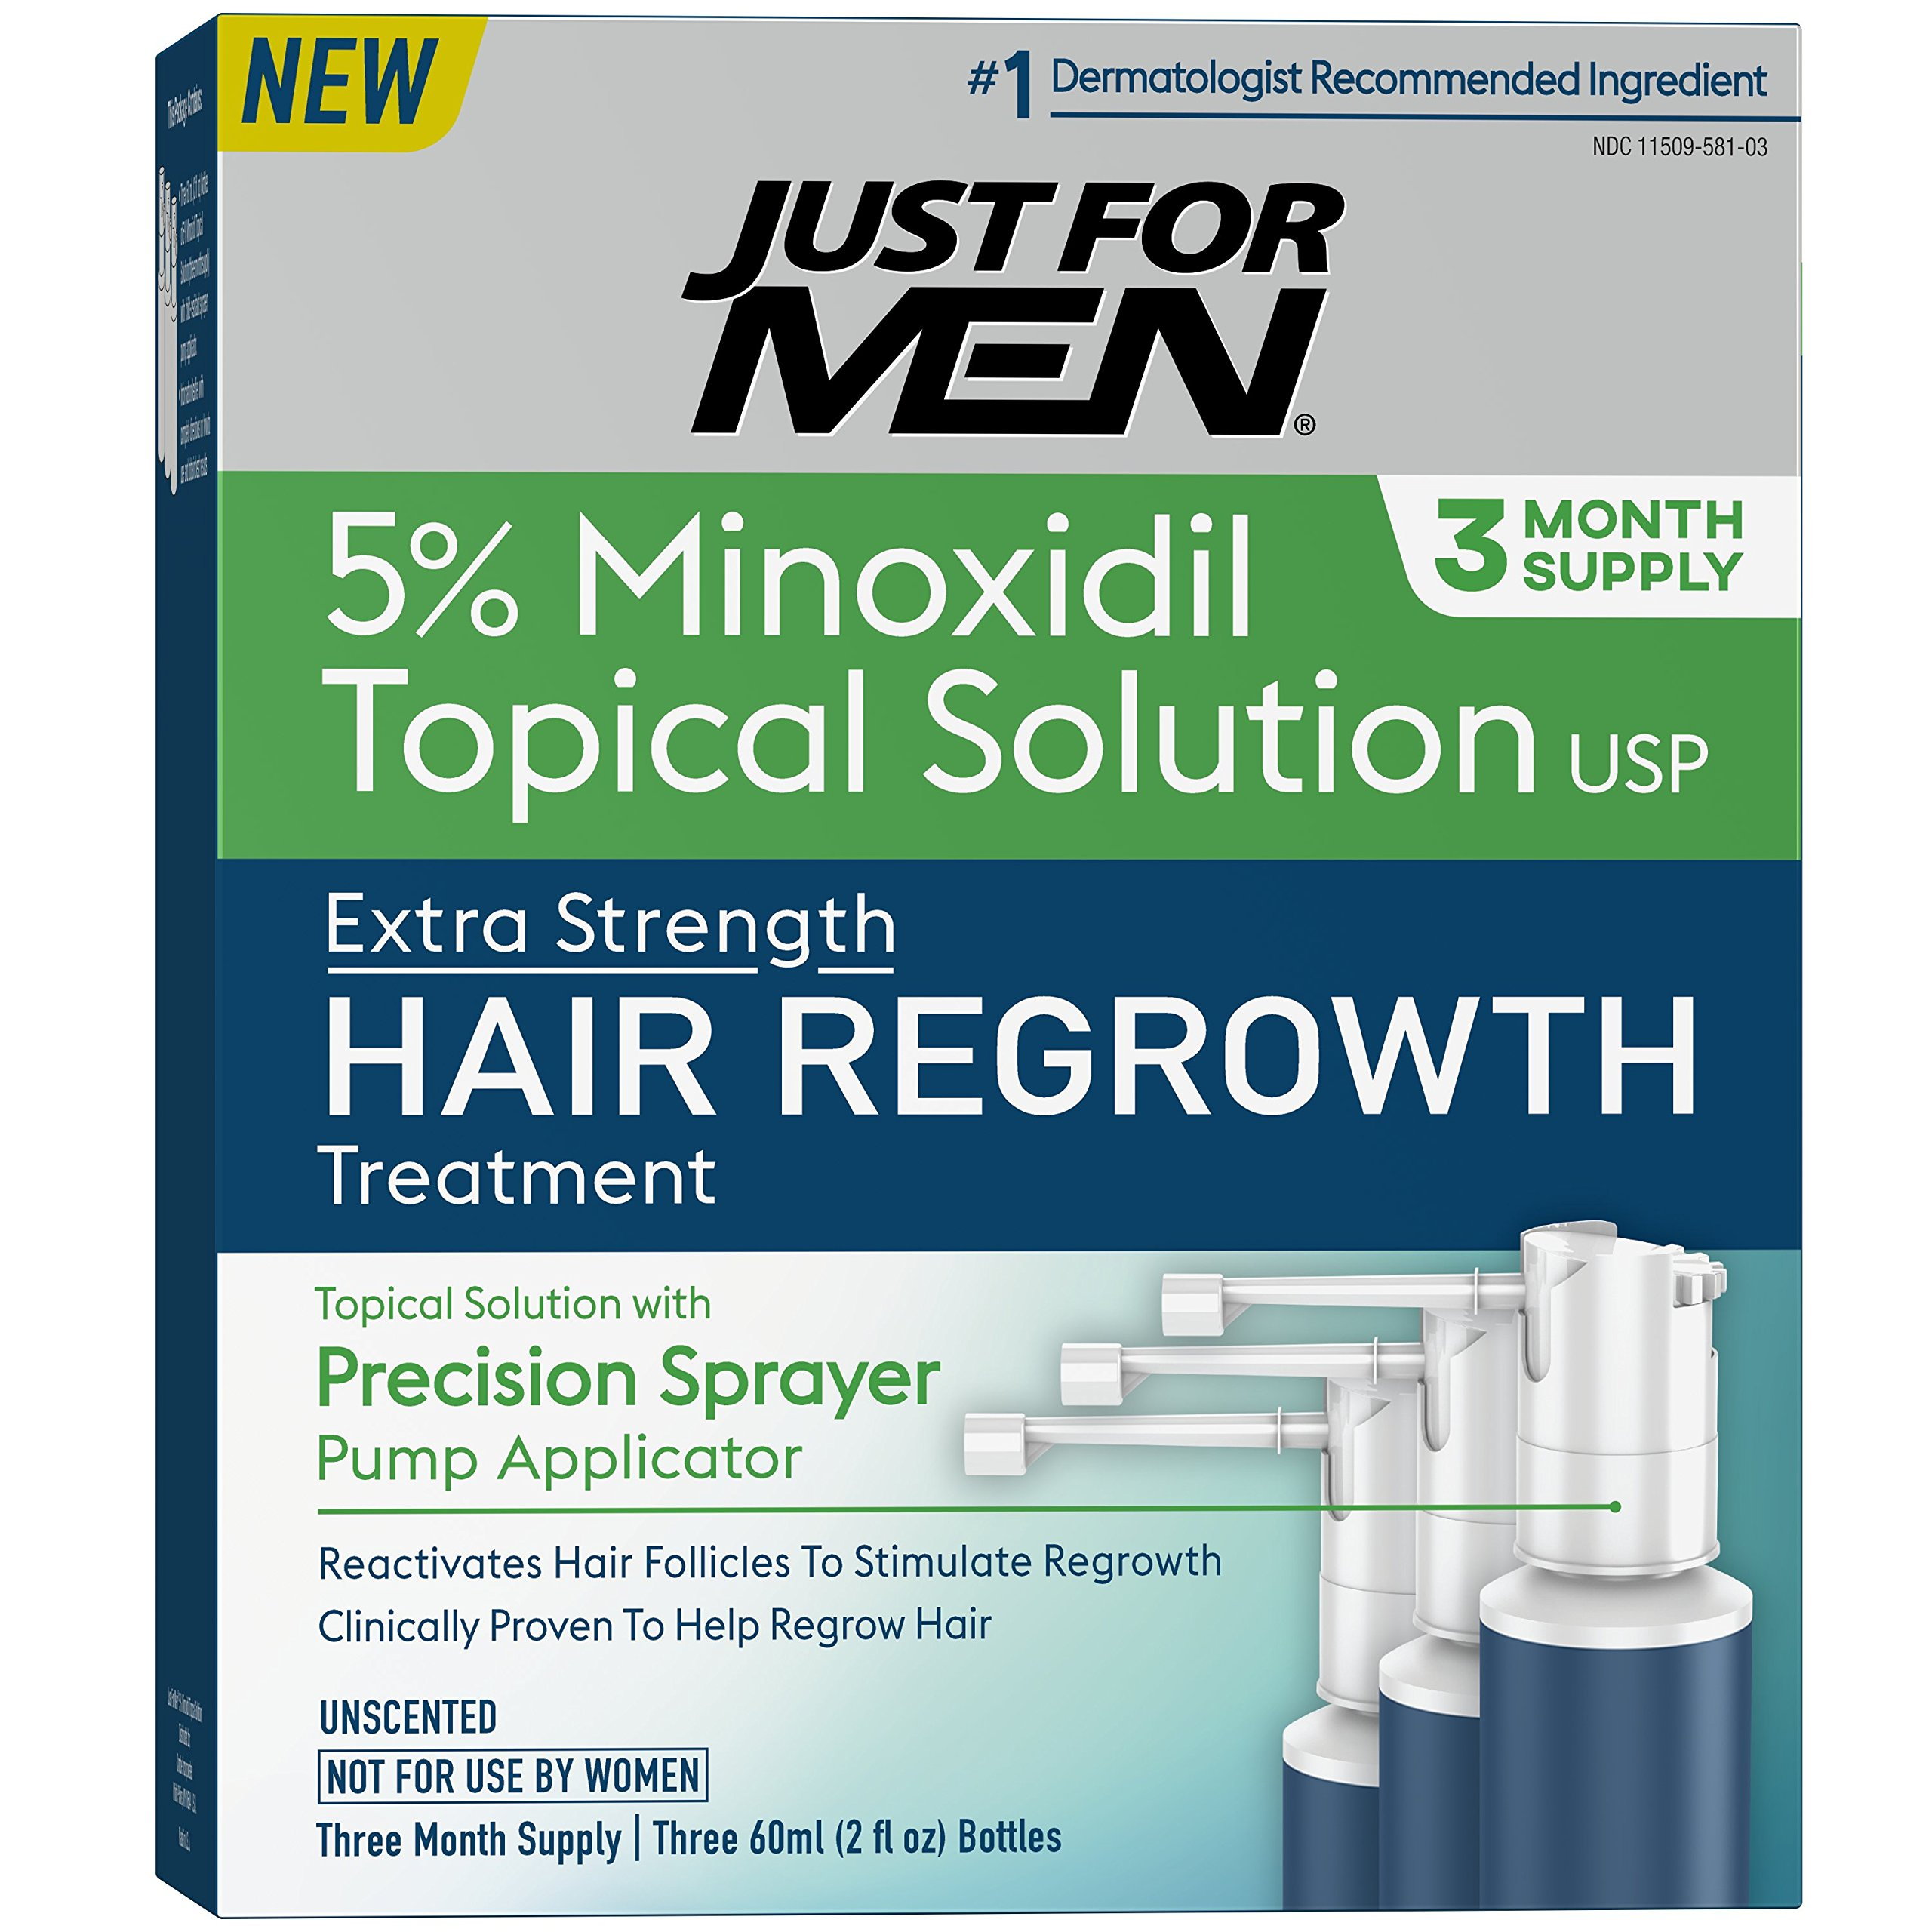 Just for Men Minoxidil Extra Strength Hair Loss Regrowth Treatment with Precision Sprayer, 6 Ounces (3 Month Supply) by Just for Men